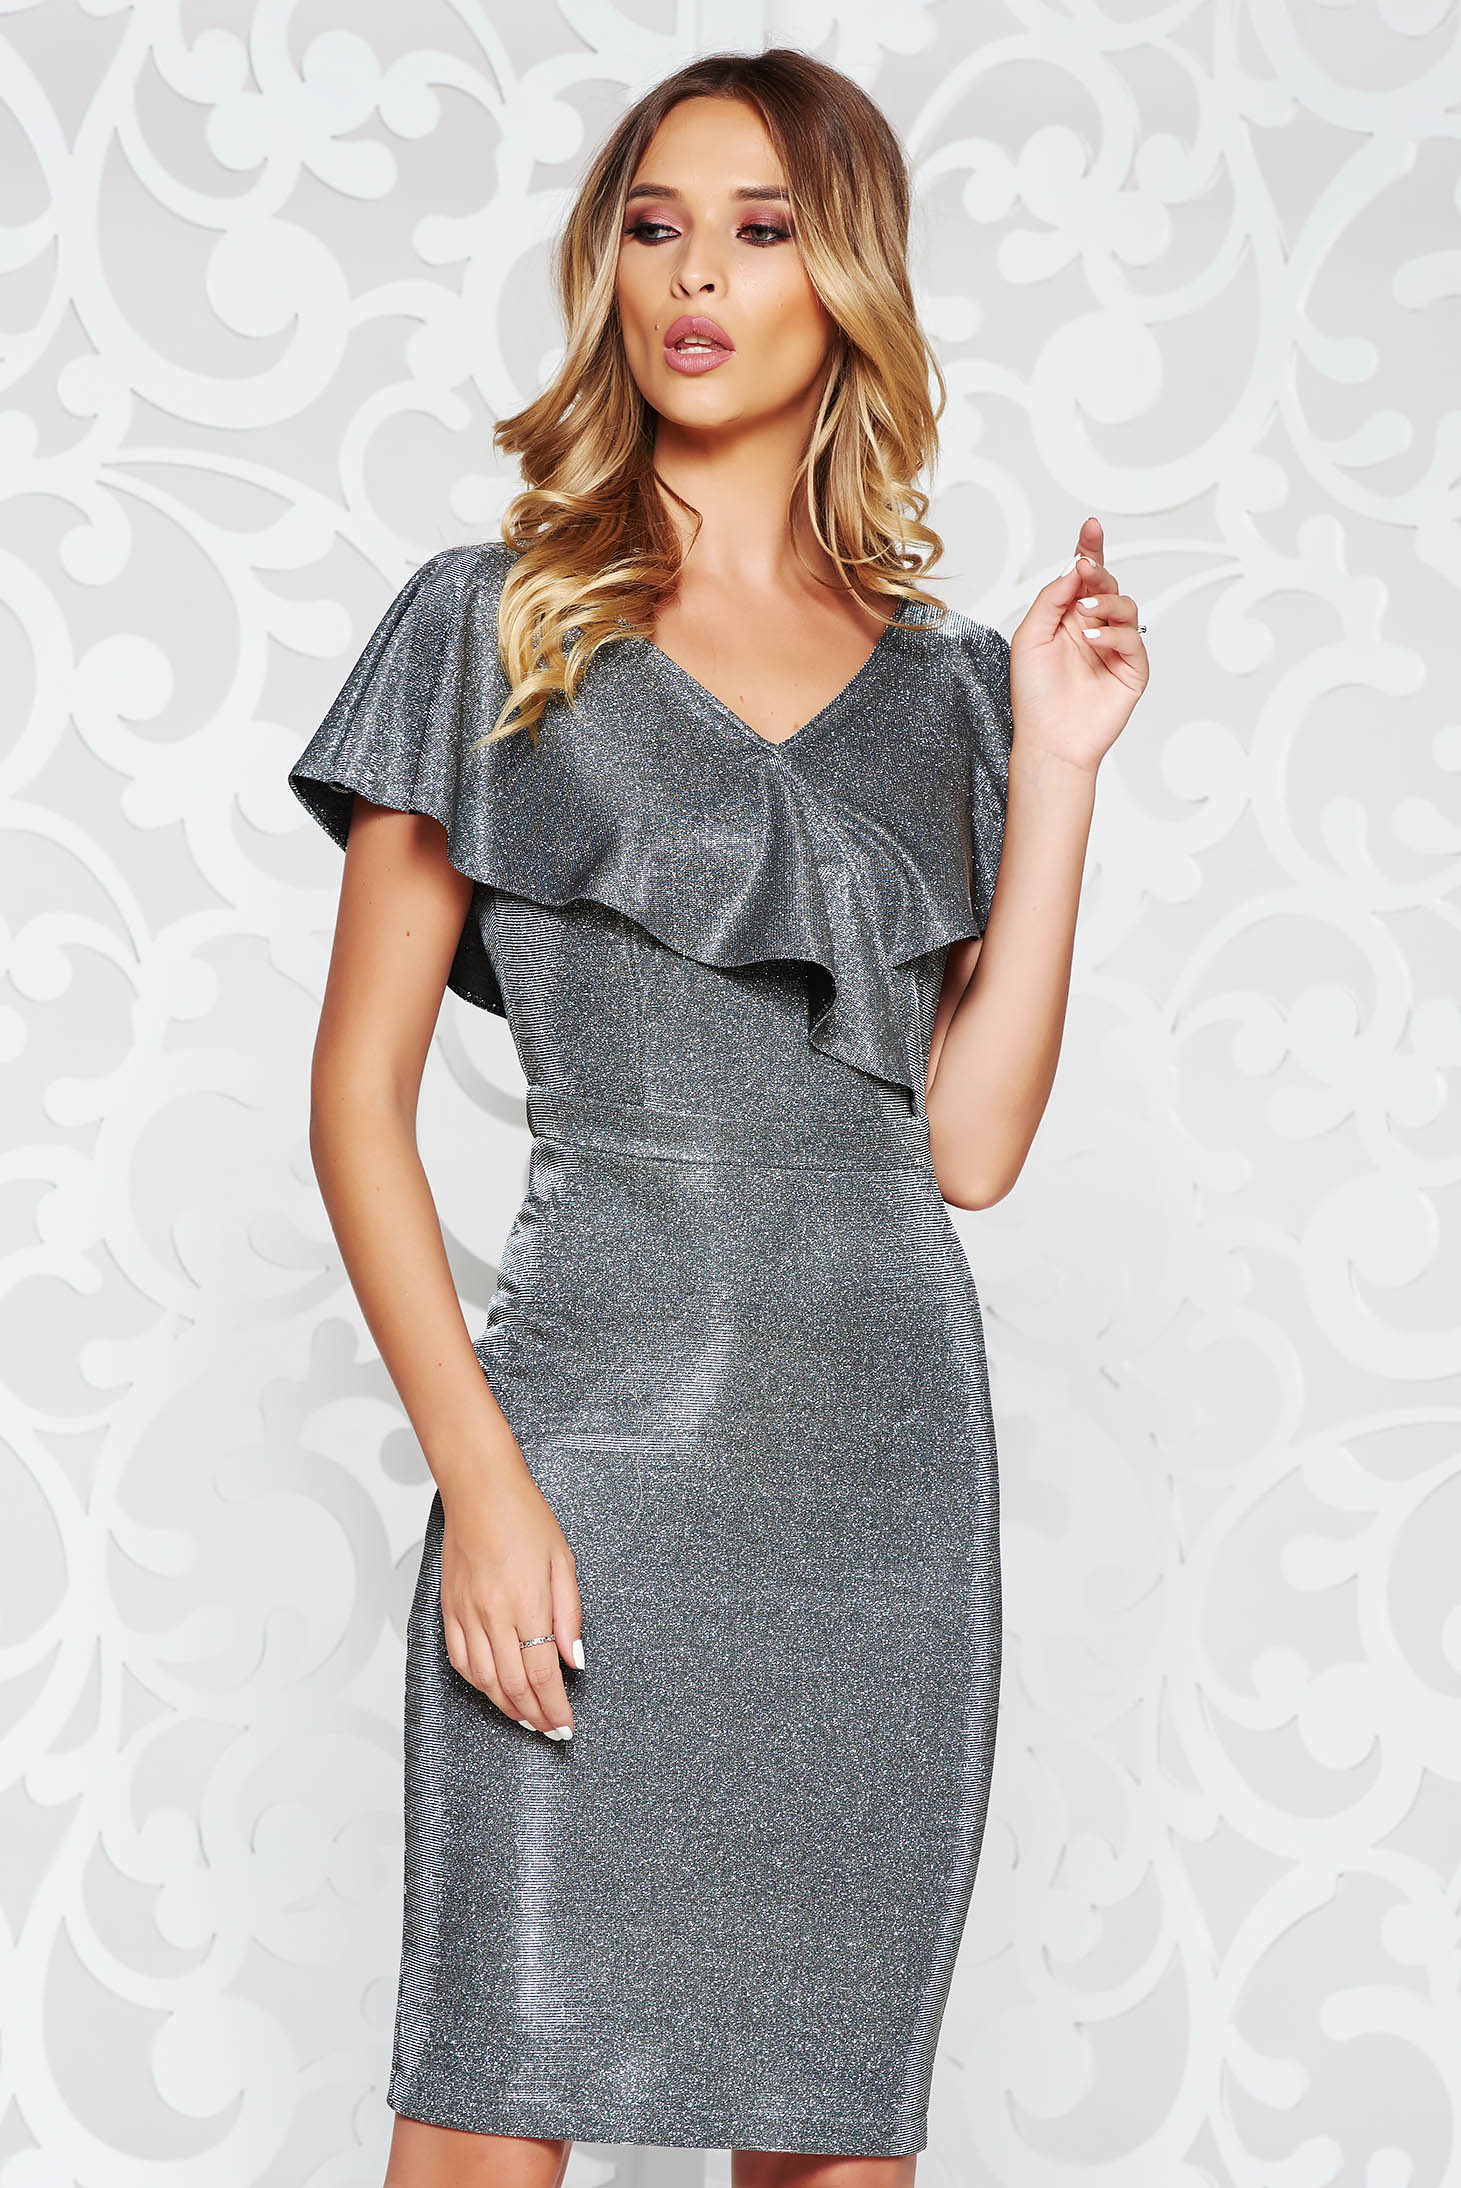 StarShinerS silver occasional midi pencil dress from elastic fabric with ruffle details